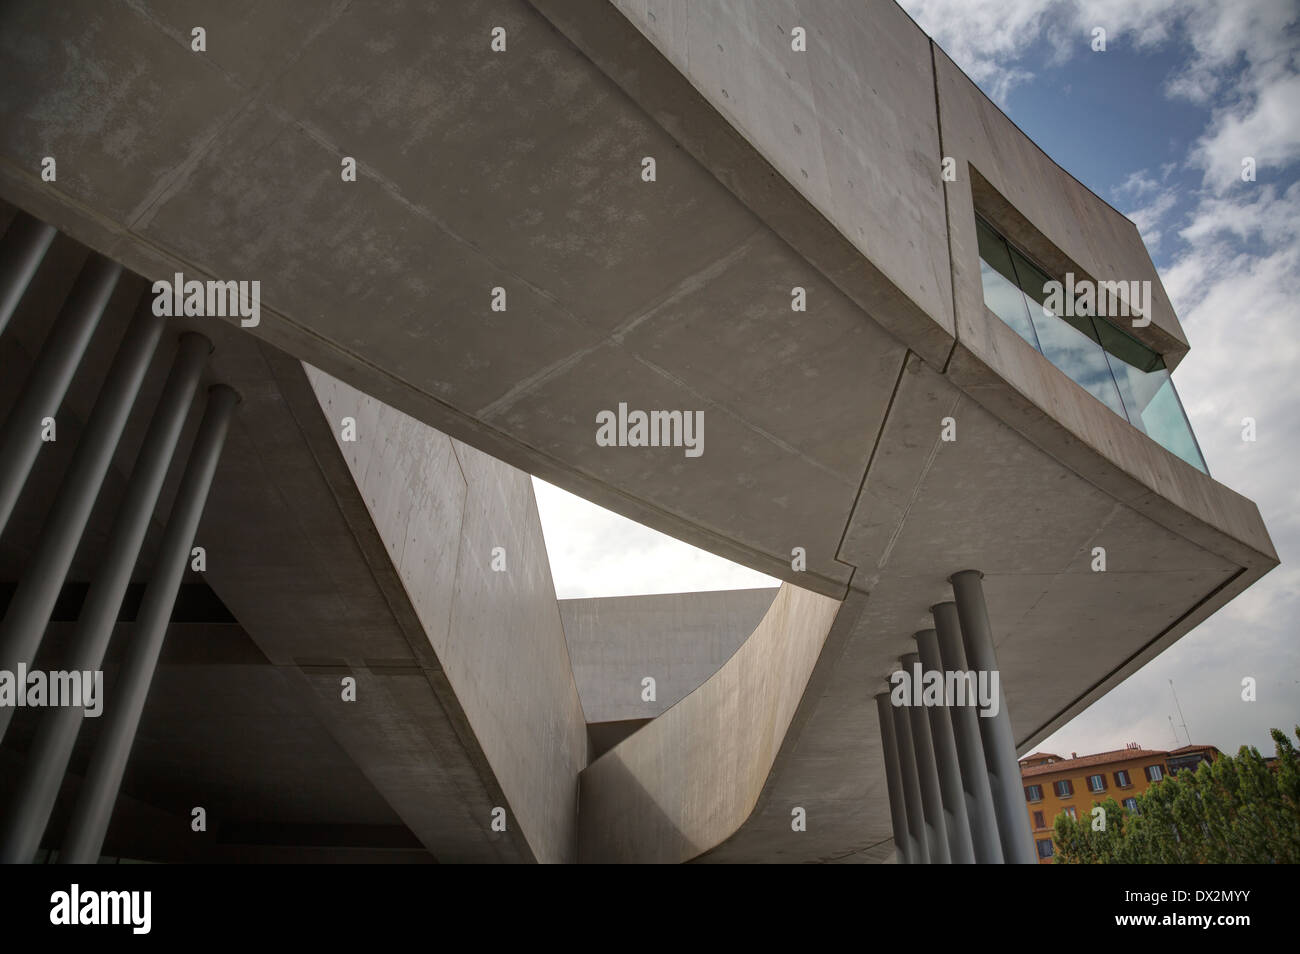 The MAXXI – National Museum of the 21st Century Arts, Rome, Italy - Stock Image